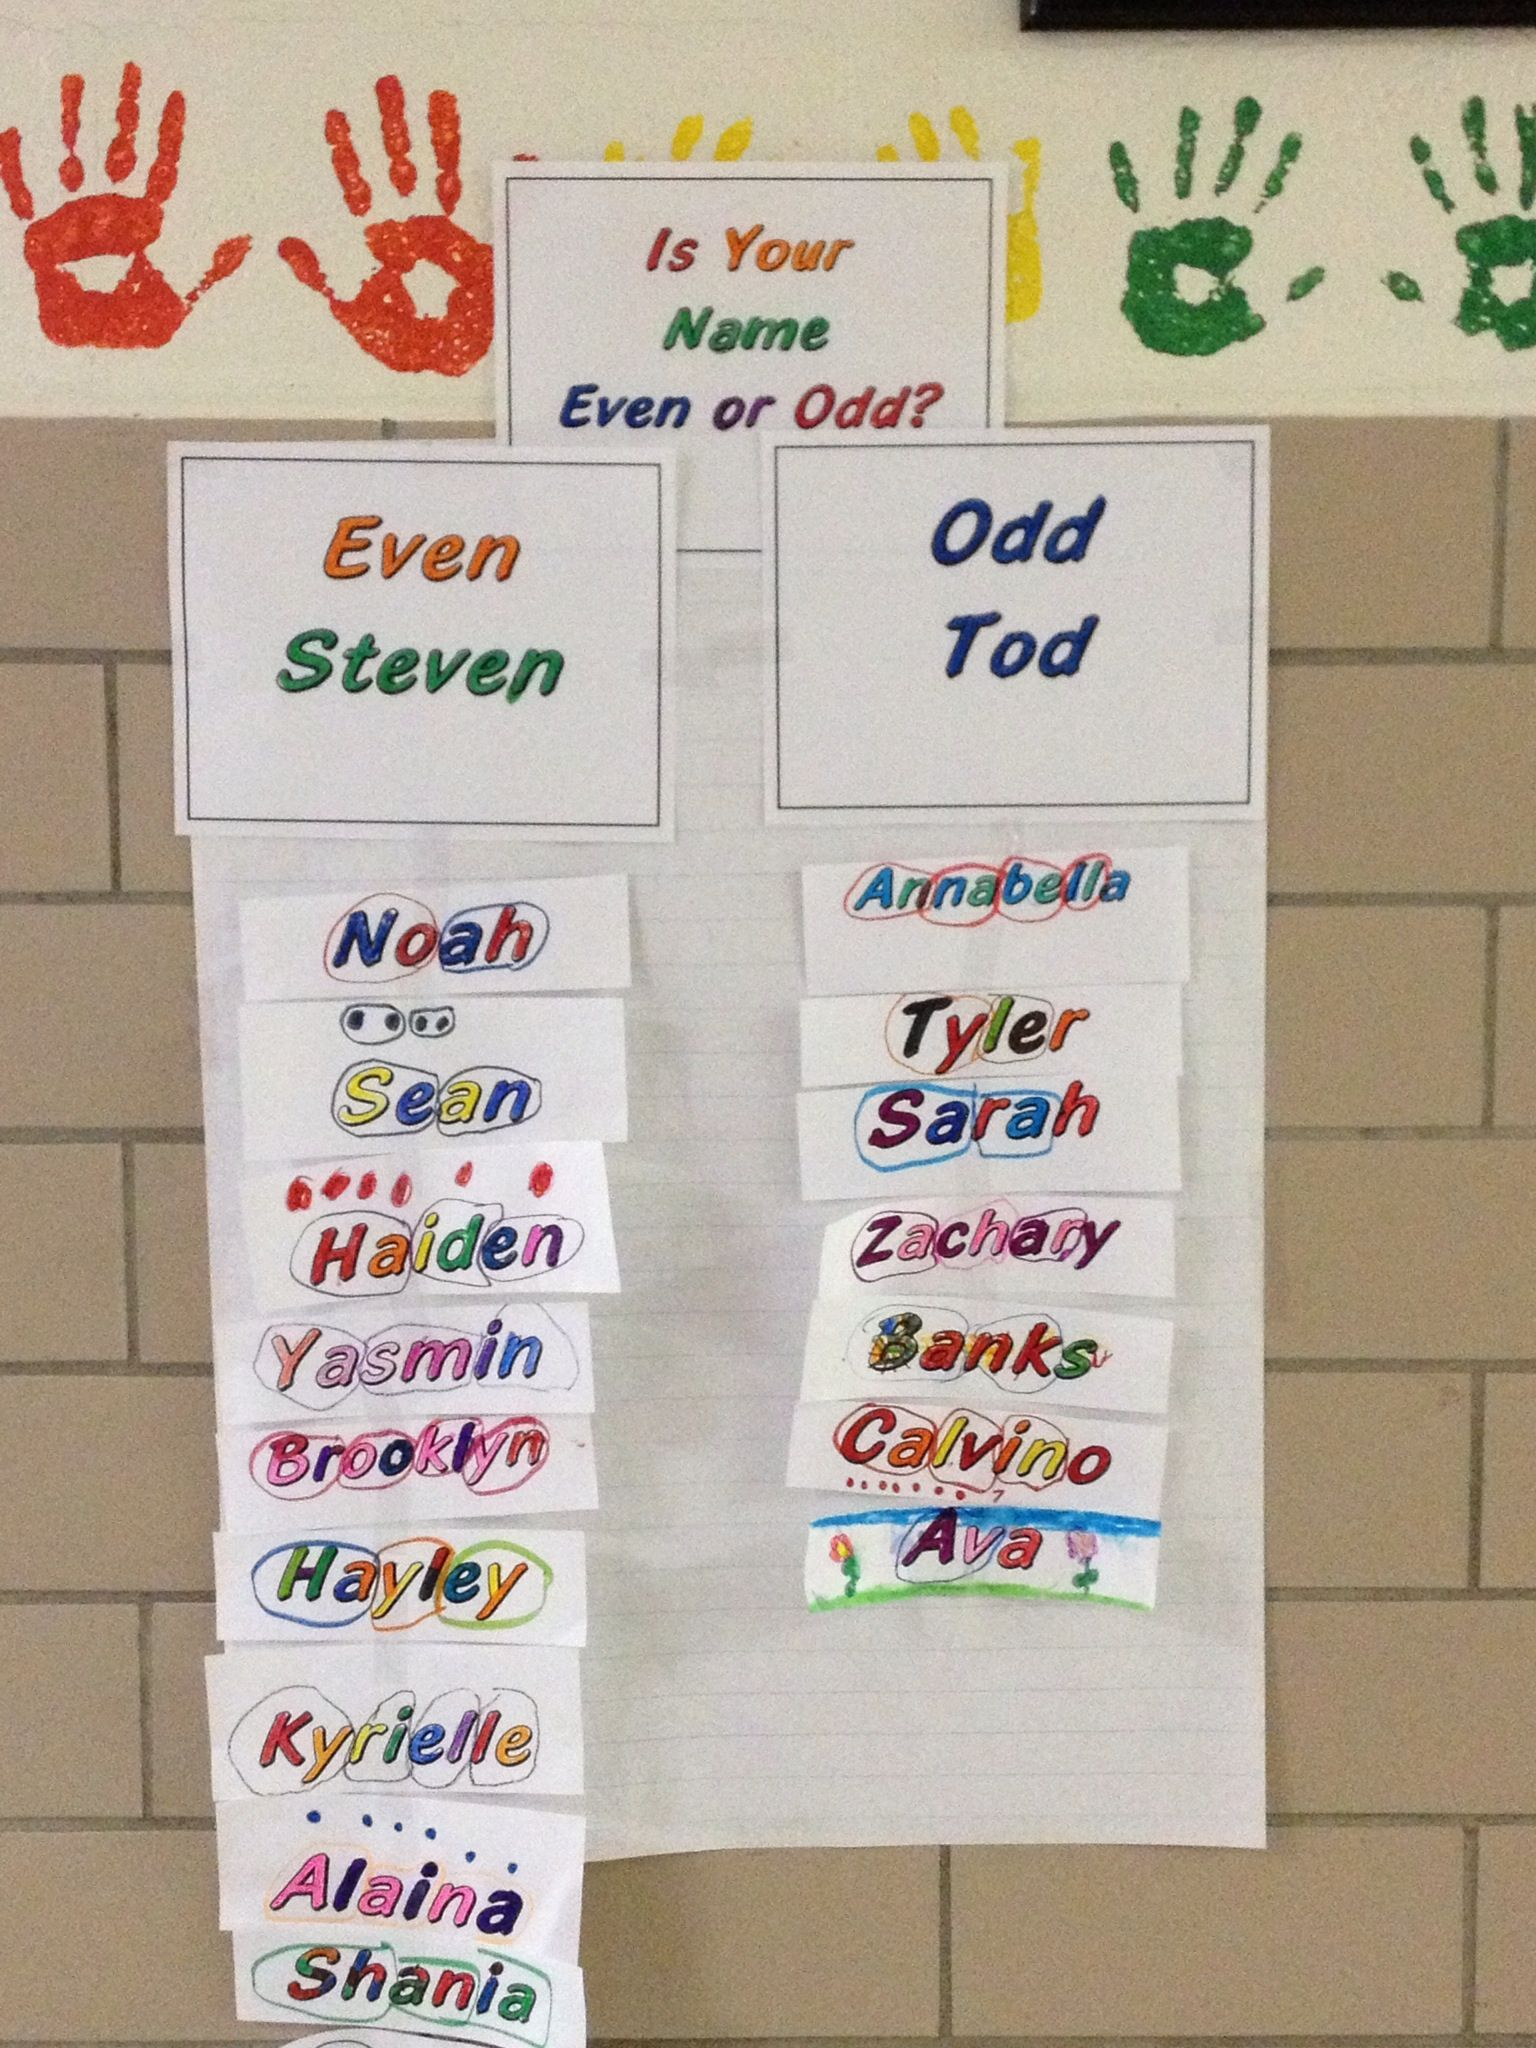 Grade 2 Math Number A 2: Odd and Even in names -- use first and last...then figure out whole class